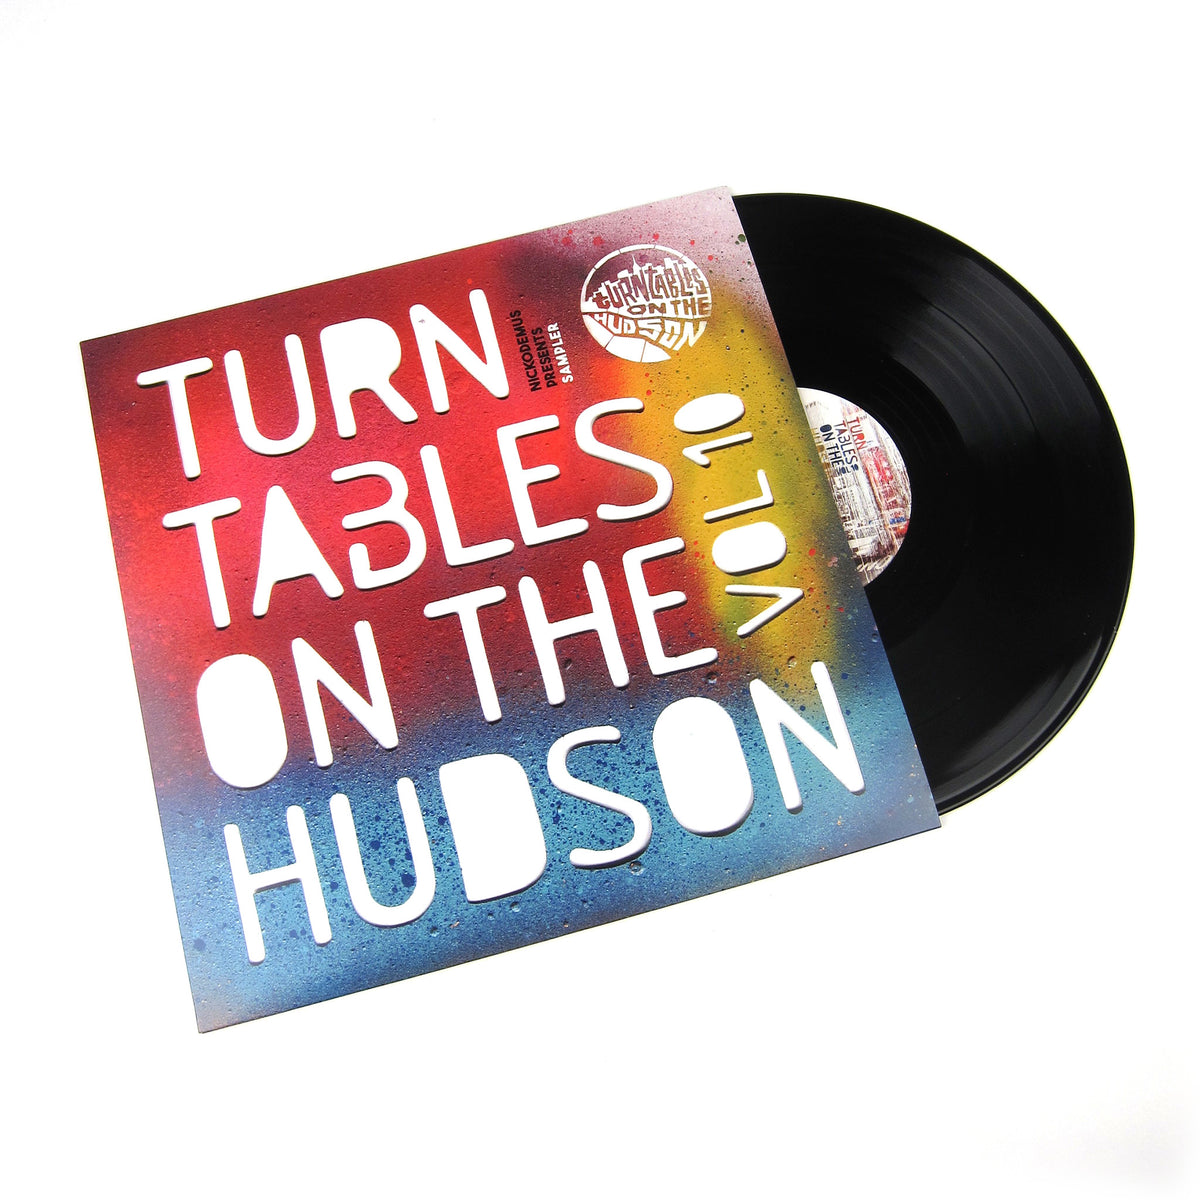 Wonderwheel Recordings: Turntables On The Hudson Vol.10 Vinyl 12""